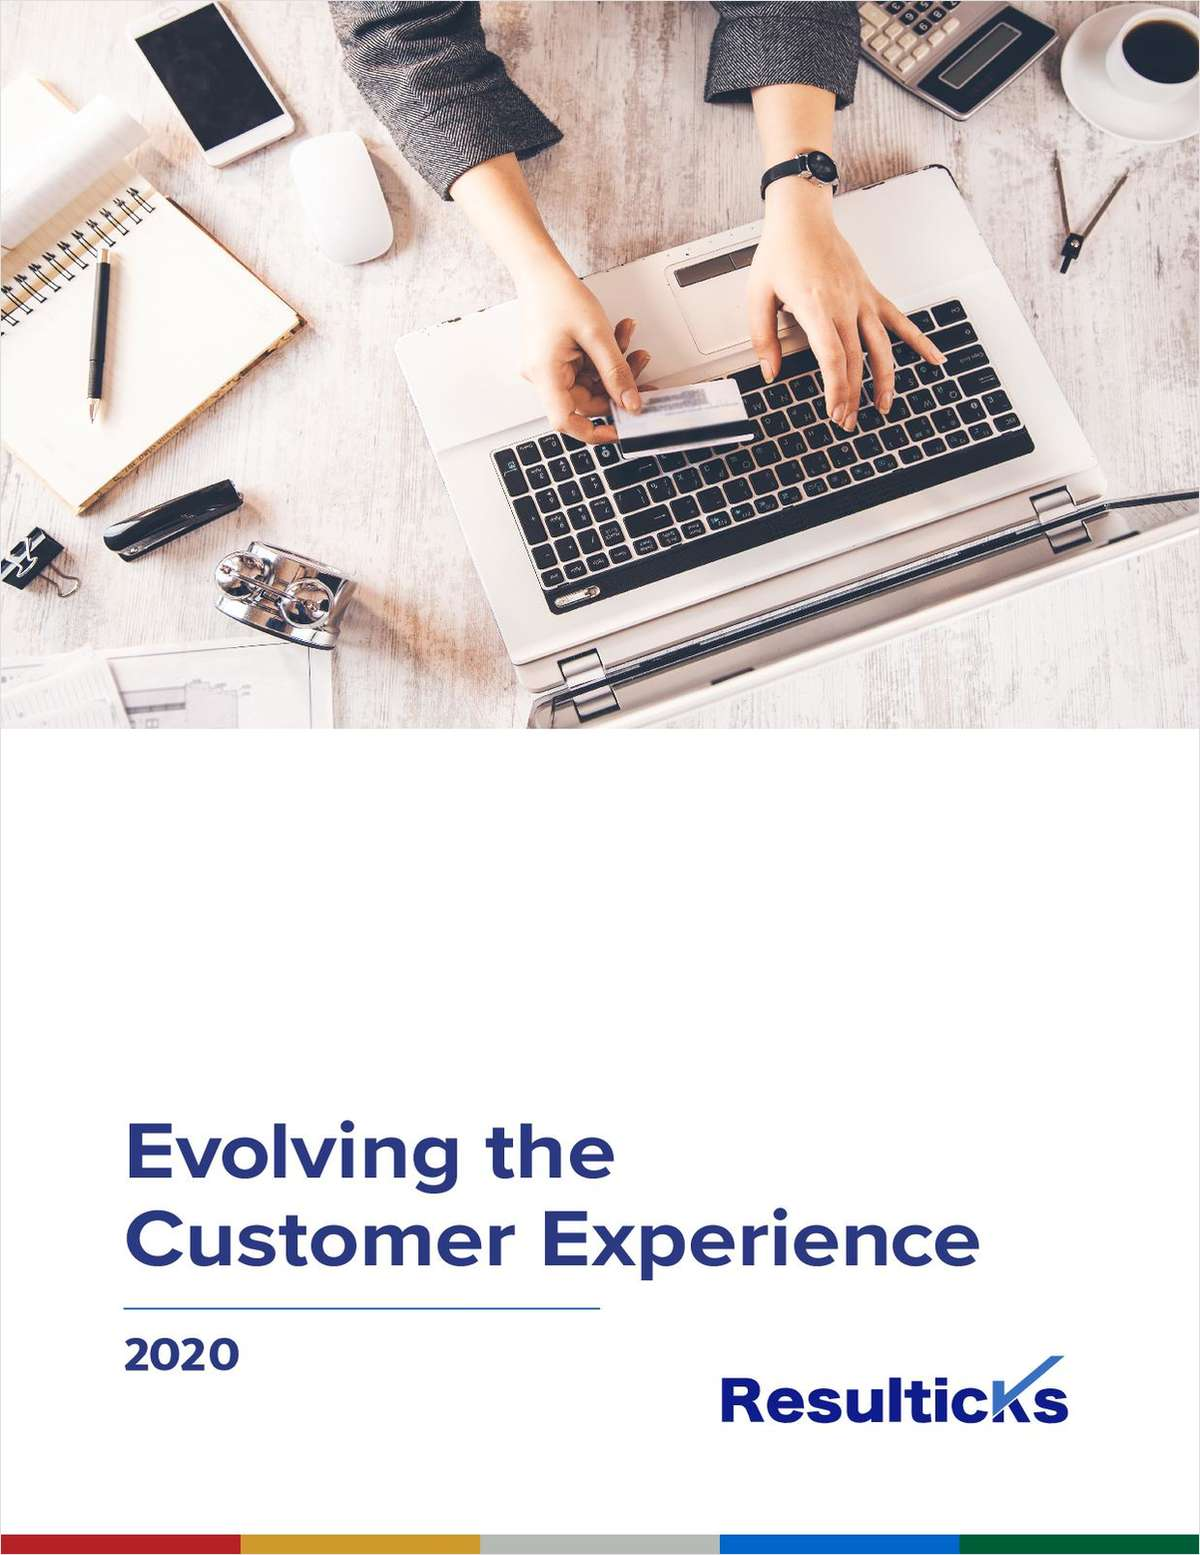 Evolving the Customer Experience